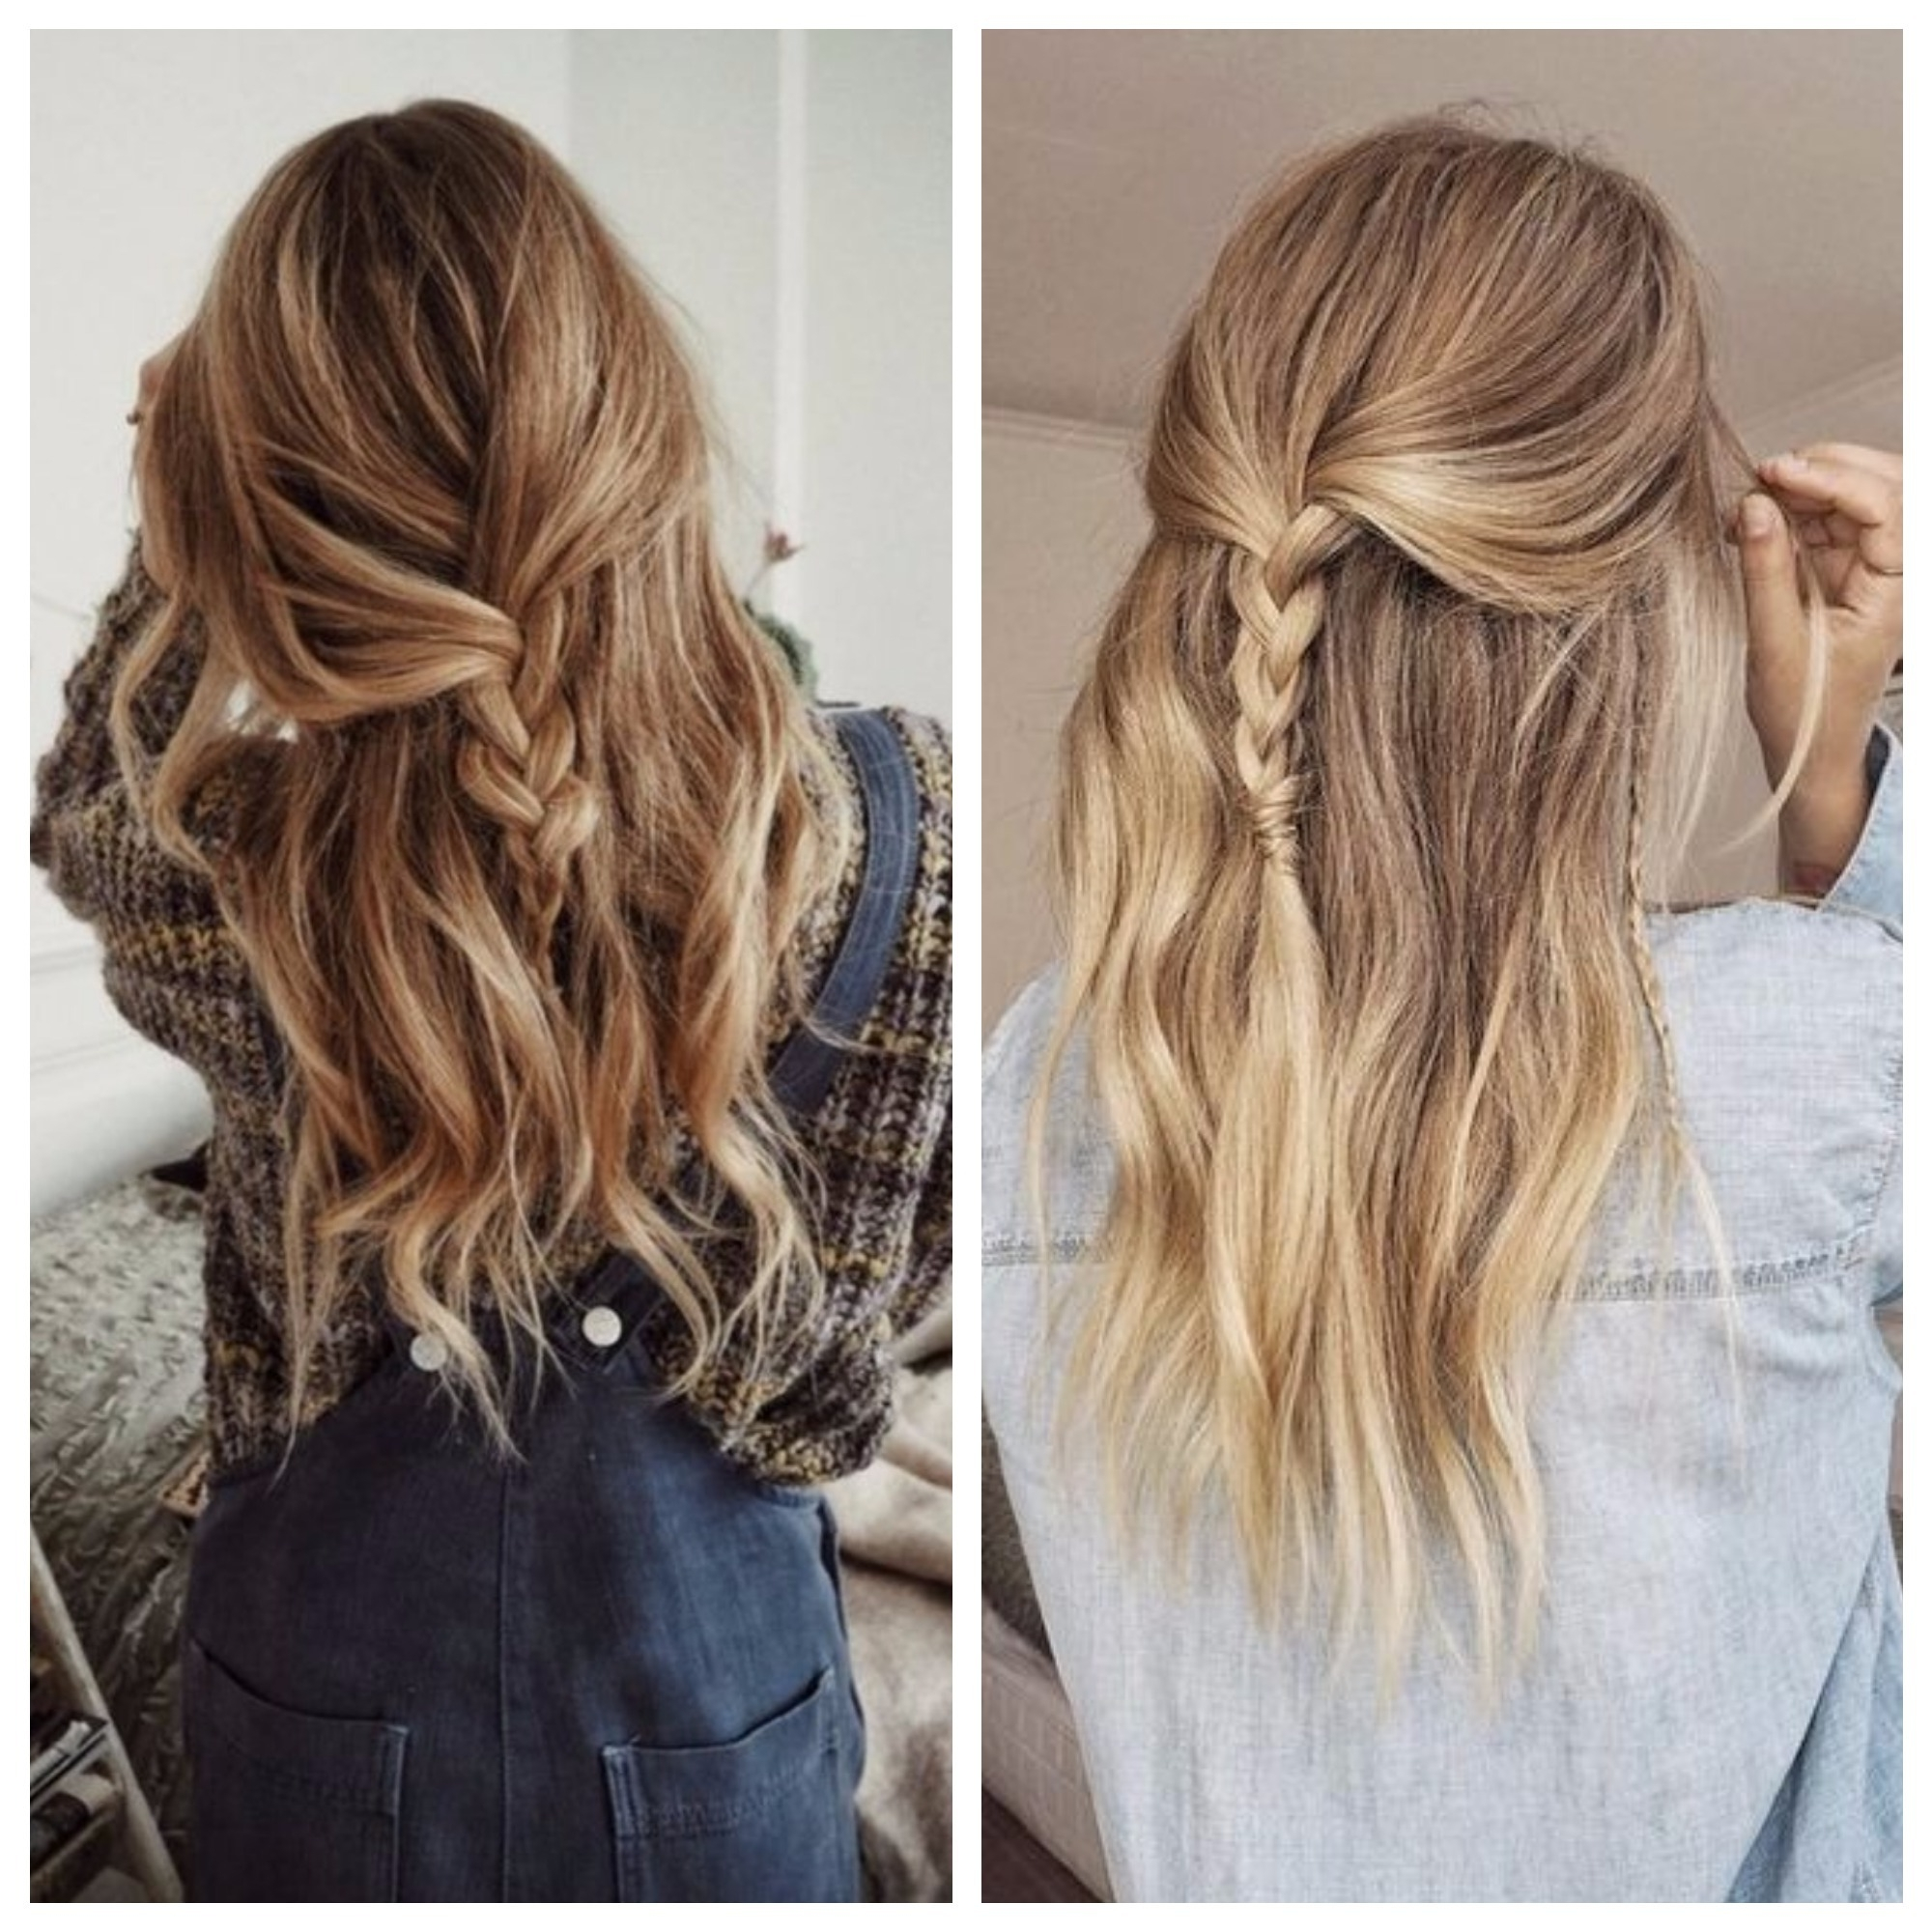 Loose Braid Hairstyle Ideas – Hair World Magazine In Well Known Loosely Braided Hairstyles (View 9 of 15)